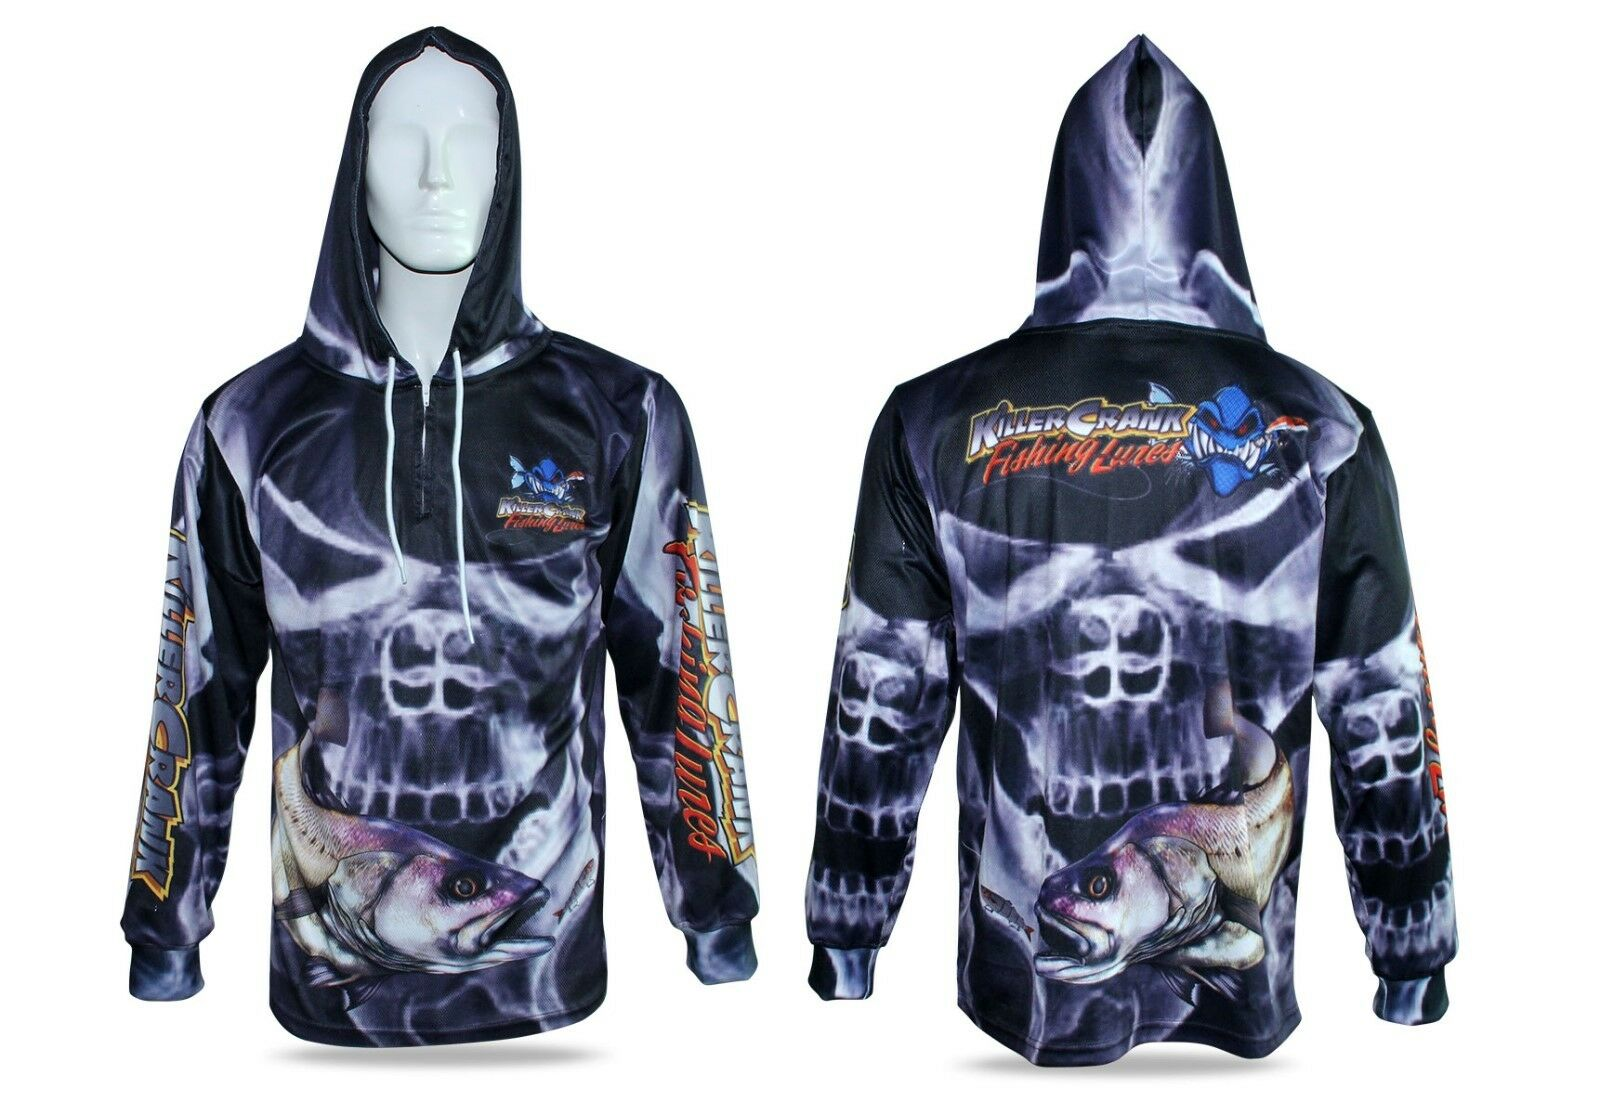 Smokey Skull Jewfish Hooded Fishing Shirt Mens XS Up To 6XL + Kids 6,8,10,12